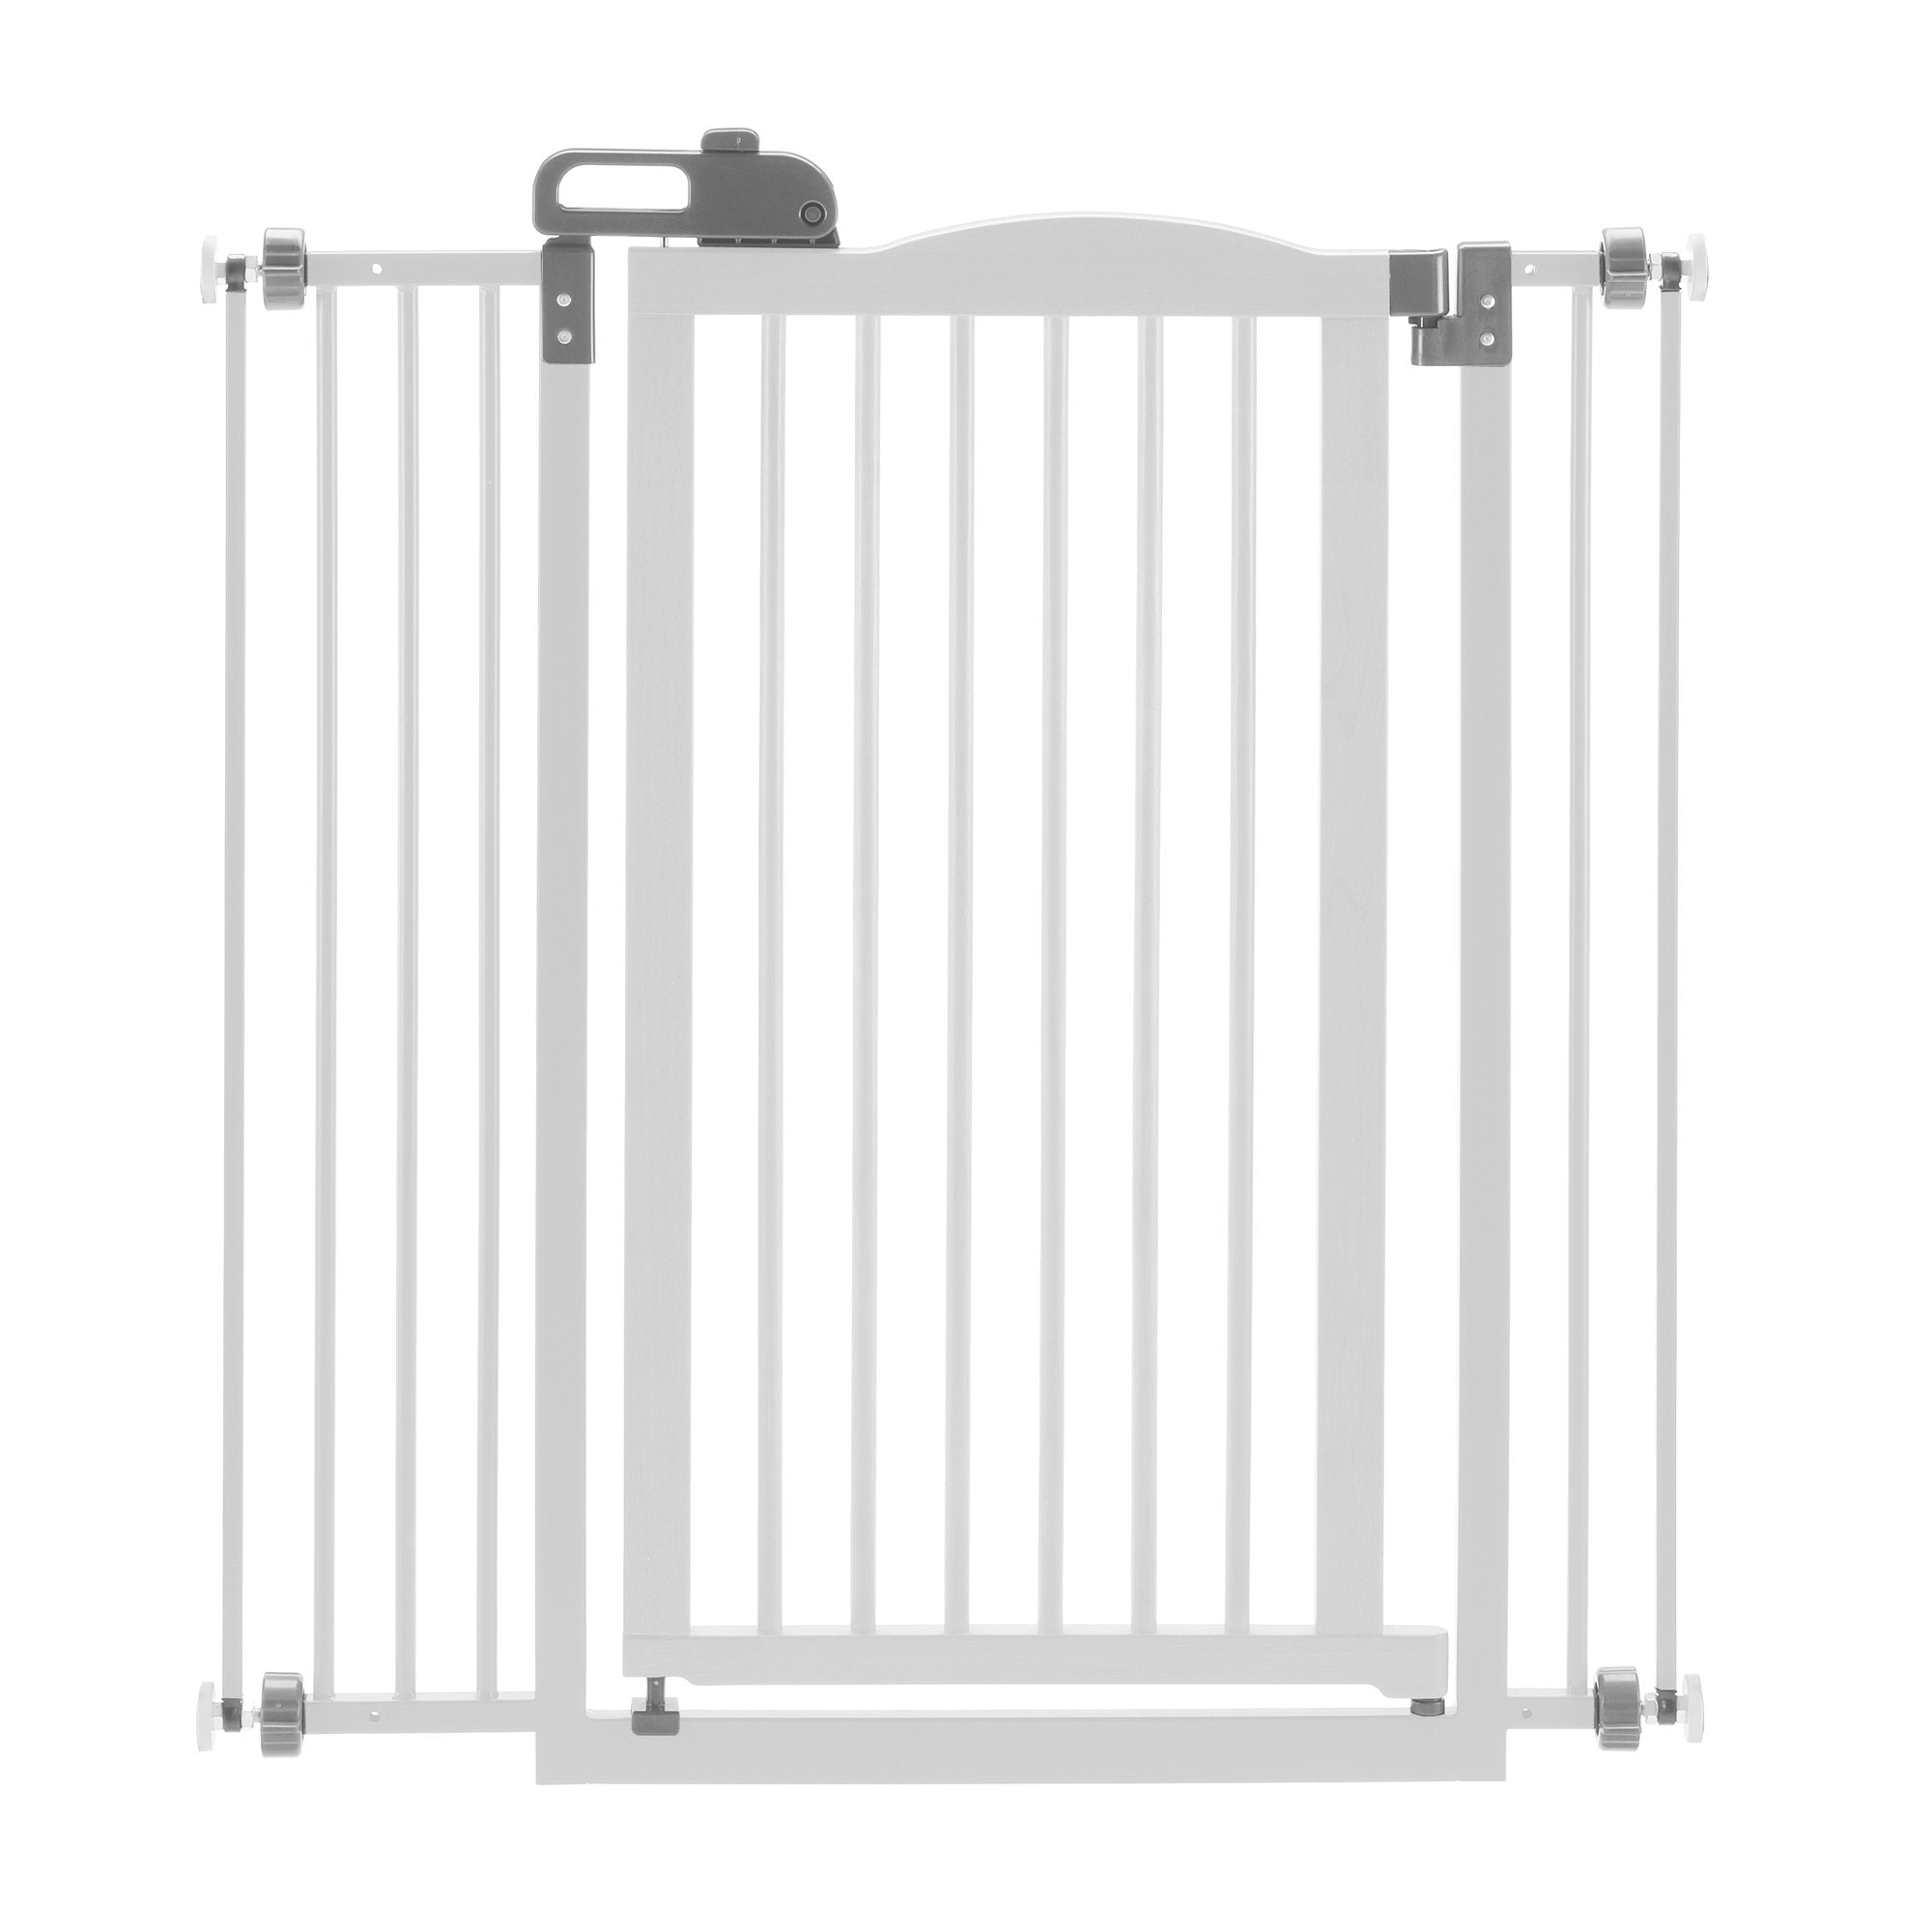 Richell R94931 Tall One-touch Pressure Mounted Pet Gate Ii